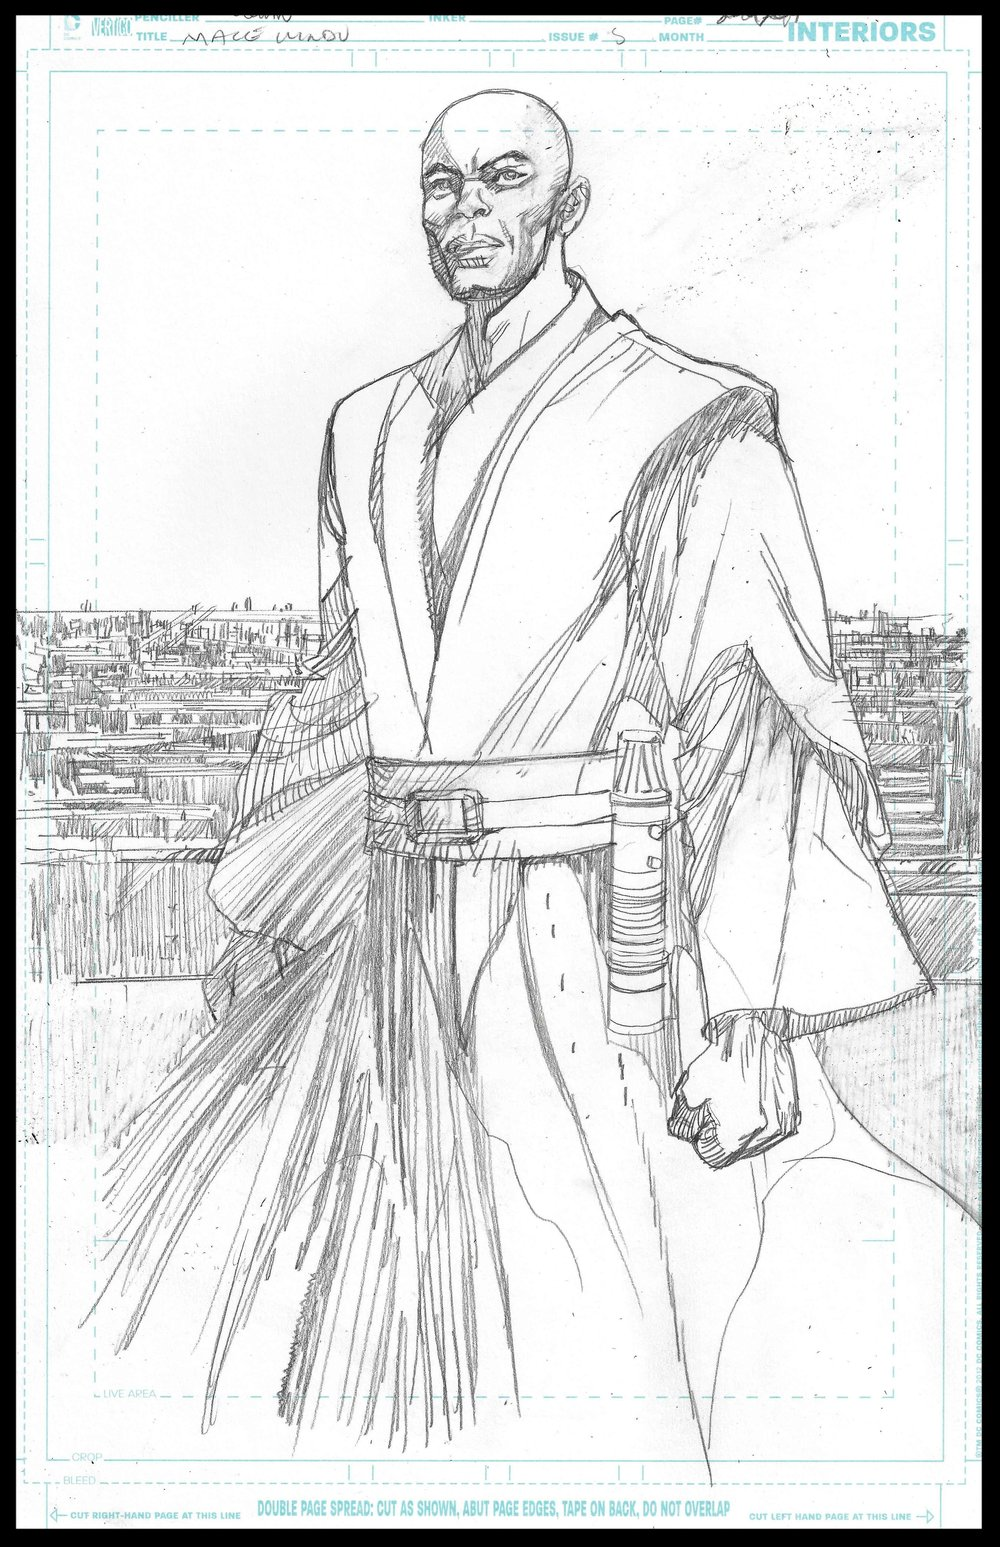 Mace Windu #5 - Page 20 - Pencils